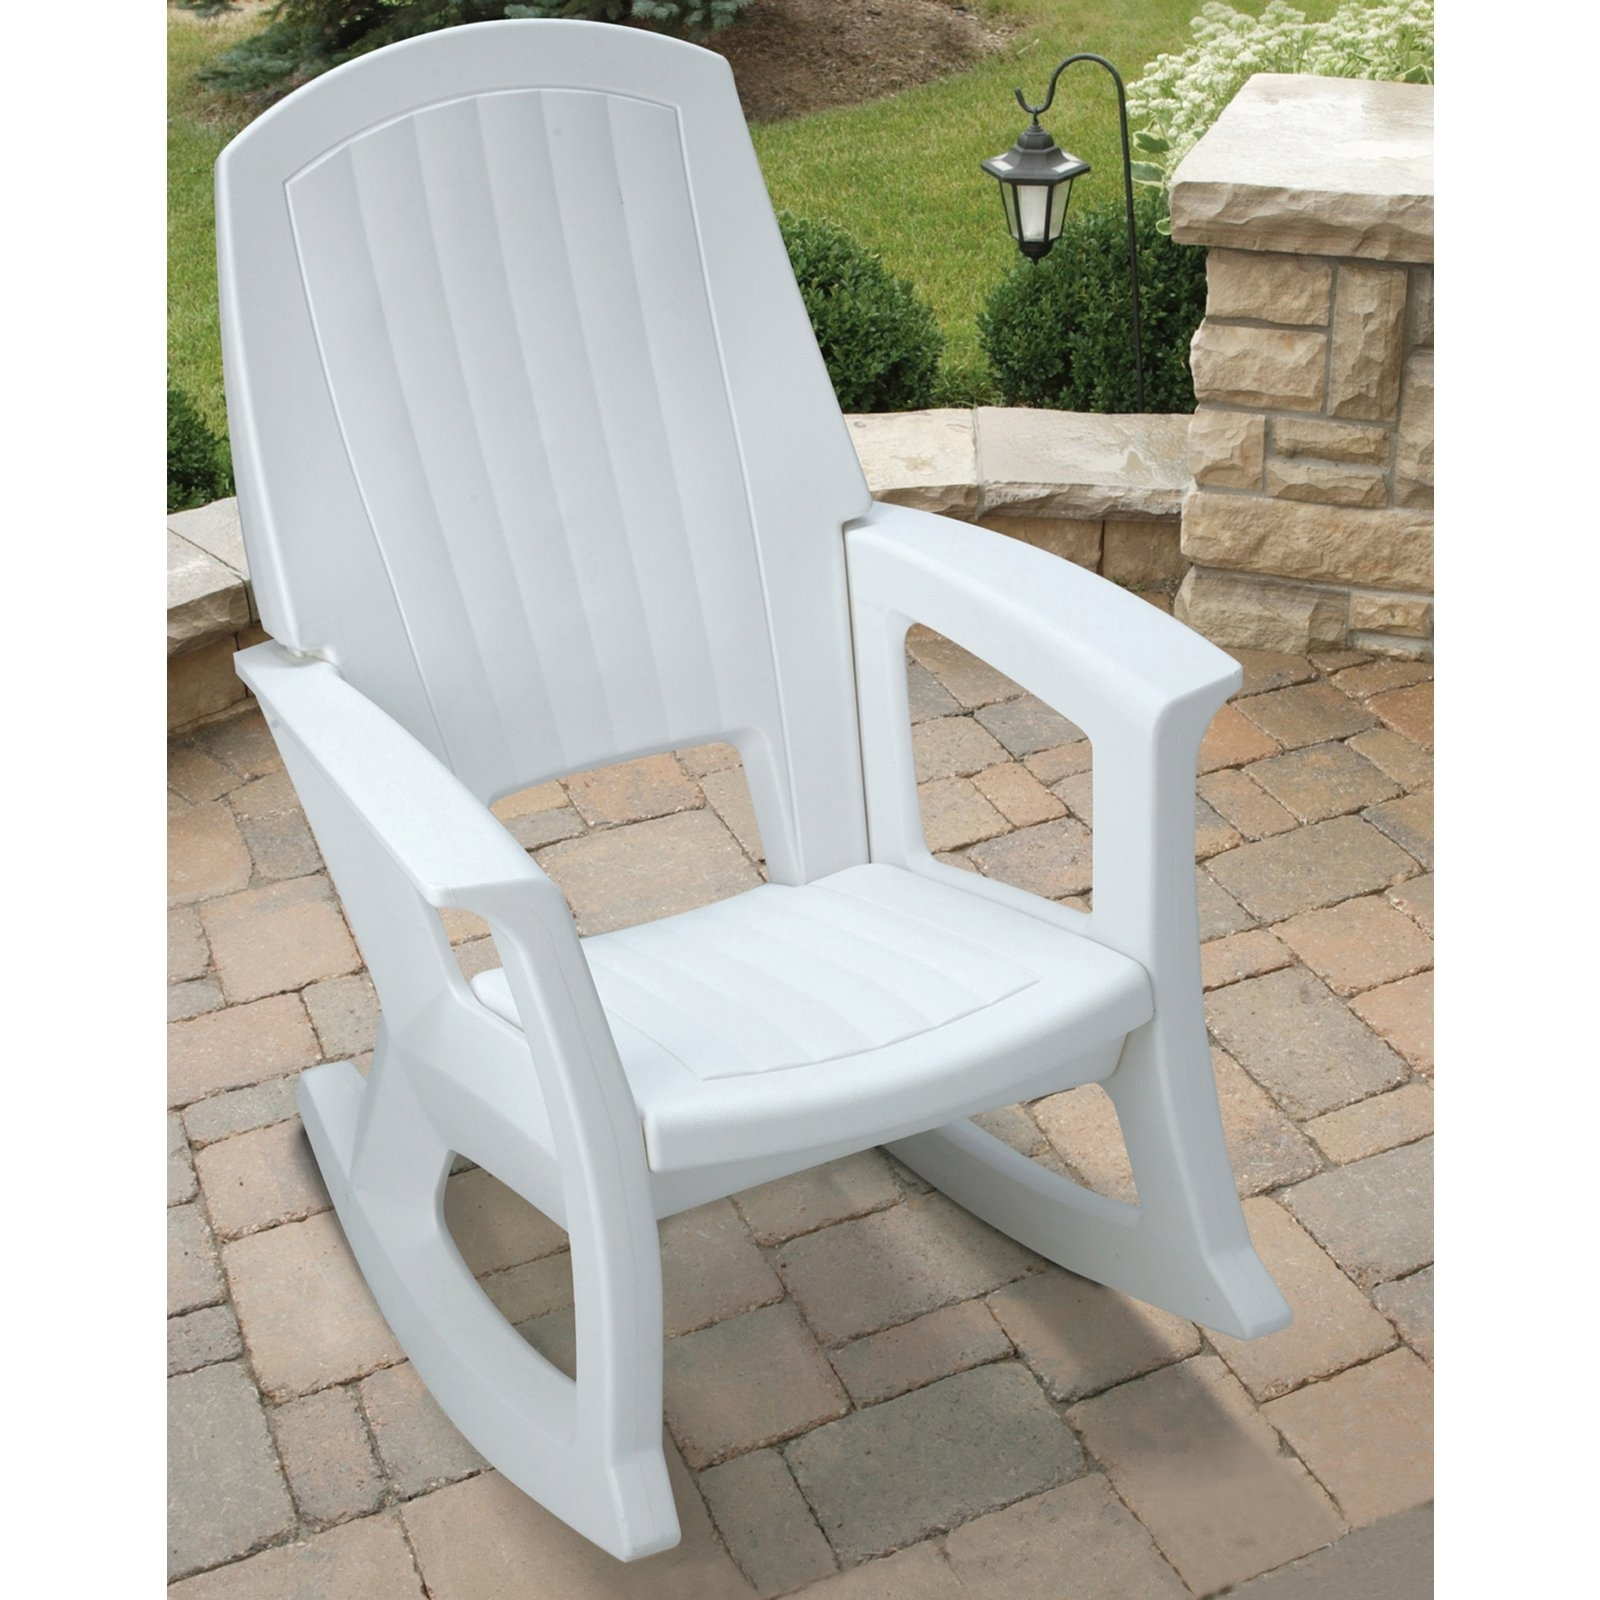 Most Recent Outdoor Patio Rocking Chairs With Semco Recycled Plastic Rocking Chair – Walmart (View 8 of 15)